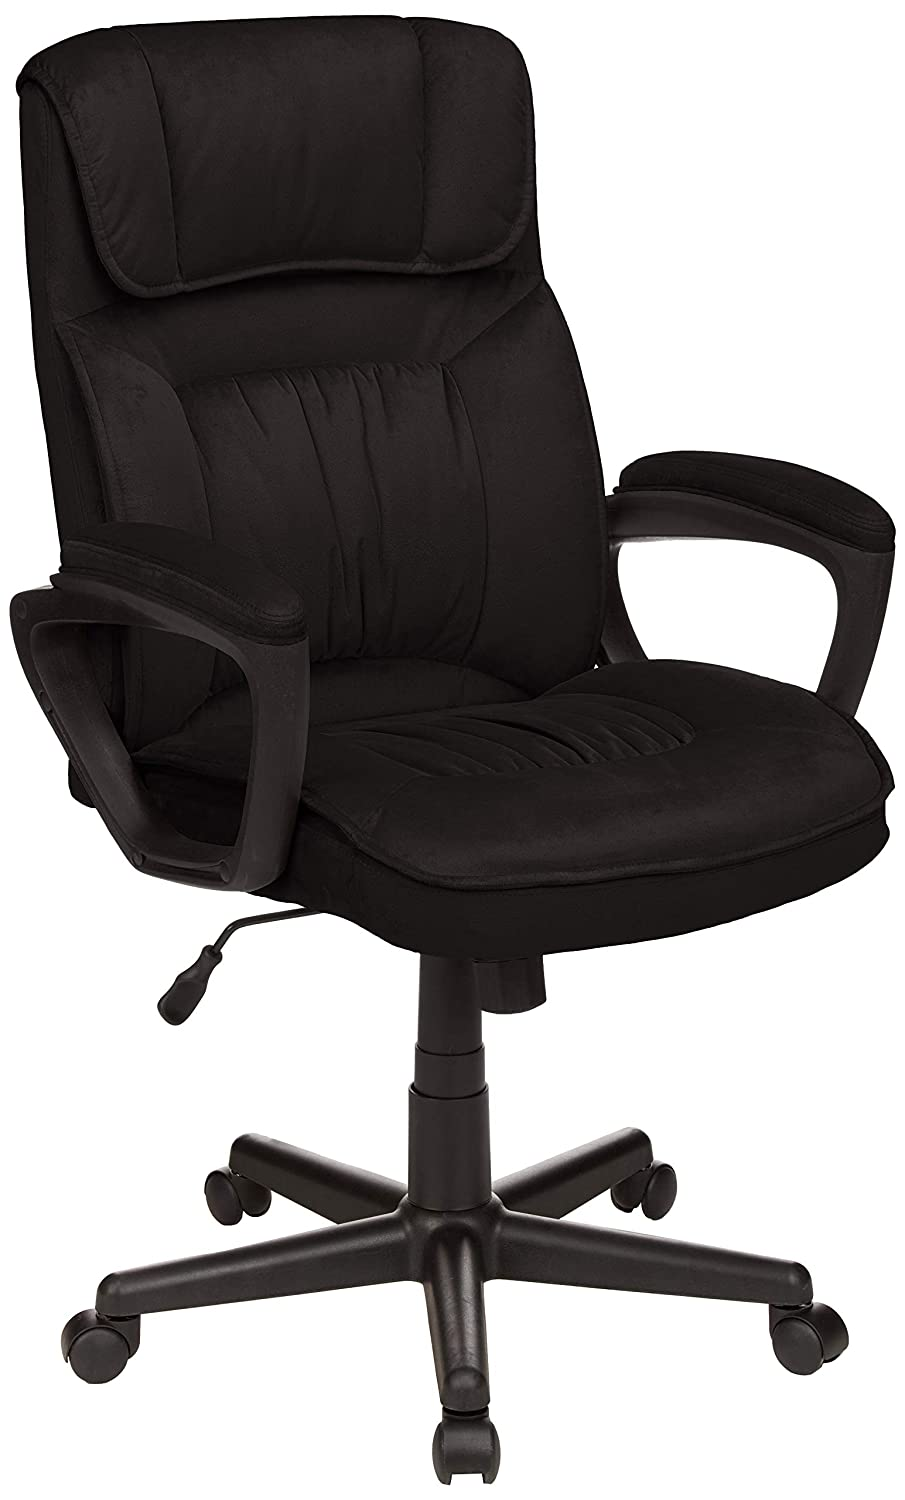 AmazonBasics Classic Office Chair - Adjustable, Swiveling, Microfiber Cover - Black